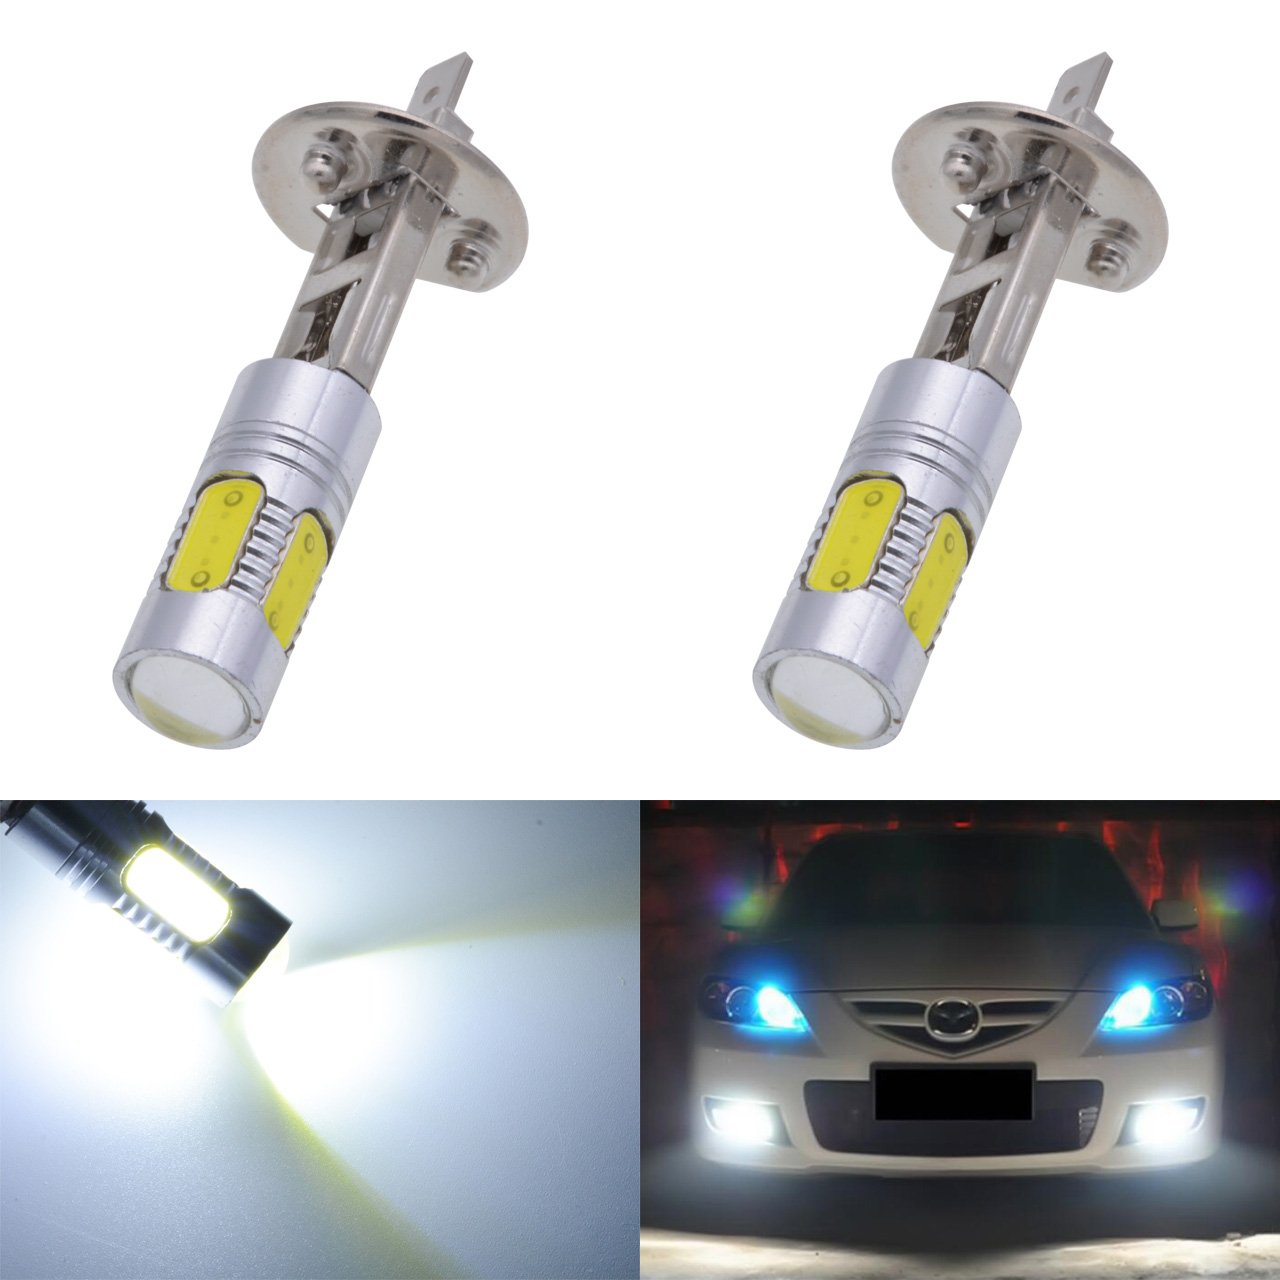 KaTur 1600 Lumens 7.5W COB H1 LED Aluminum Fog Lights DRL Turn Signals Light Bulbs Day Running Light 12V White 6000K 2-Pack